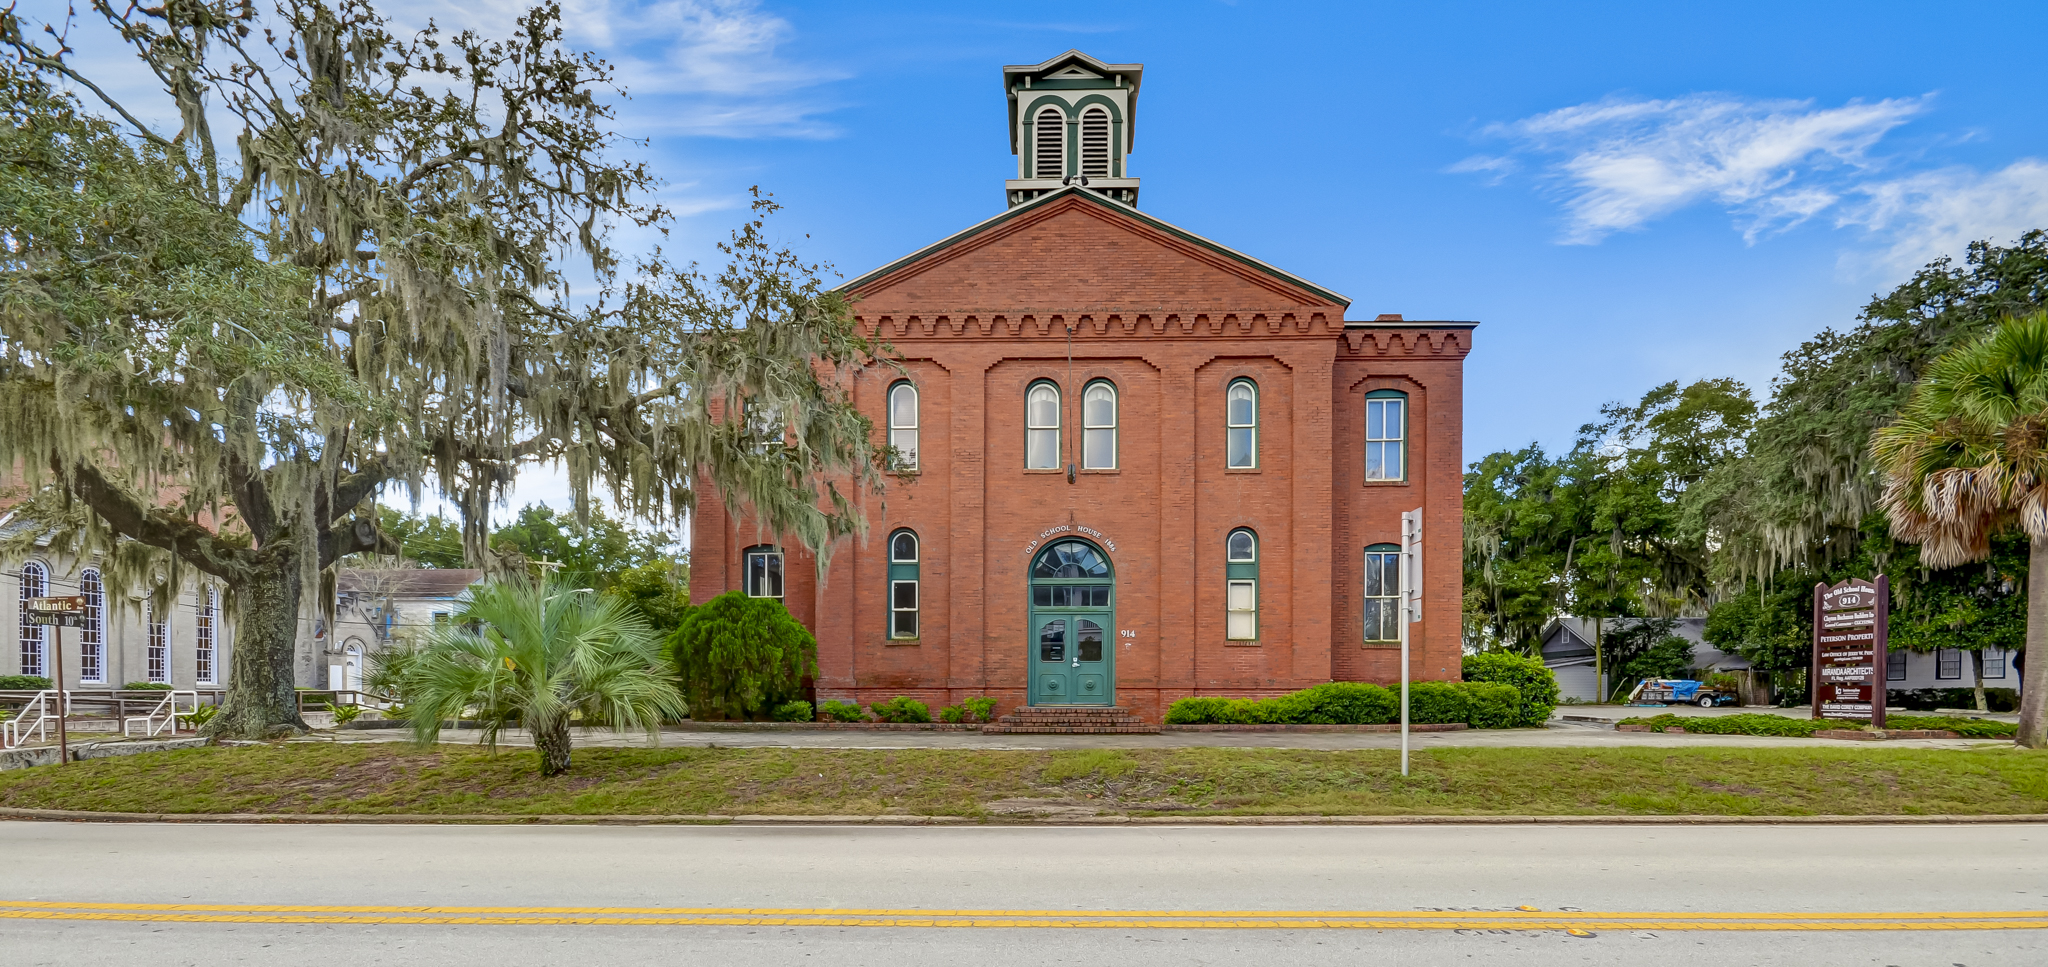 Single Family Home for Sale at Convert this Historic School House into Your Dream Home 914 Atlantc Avenue Fernandina Beach, Florida, 32034 United States